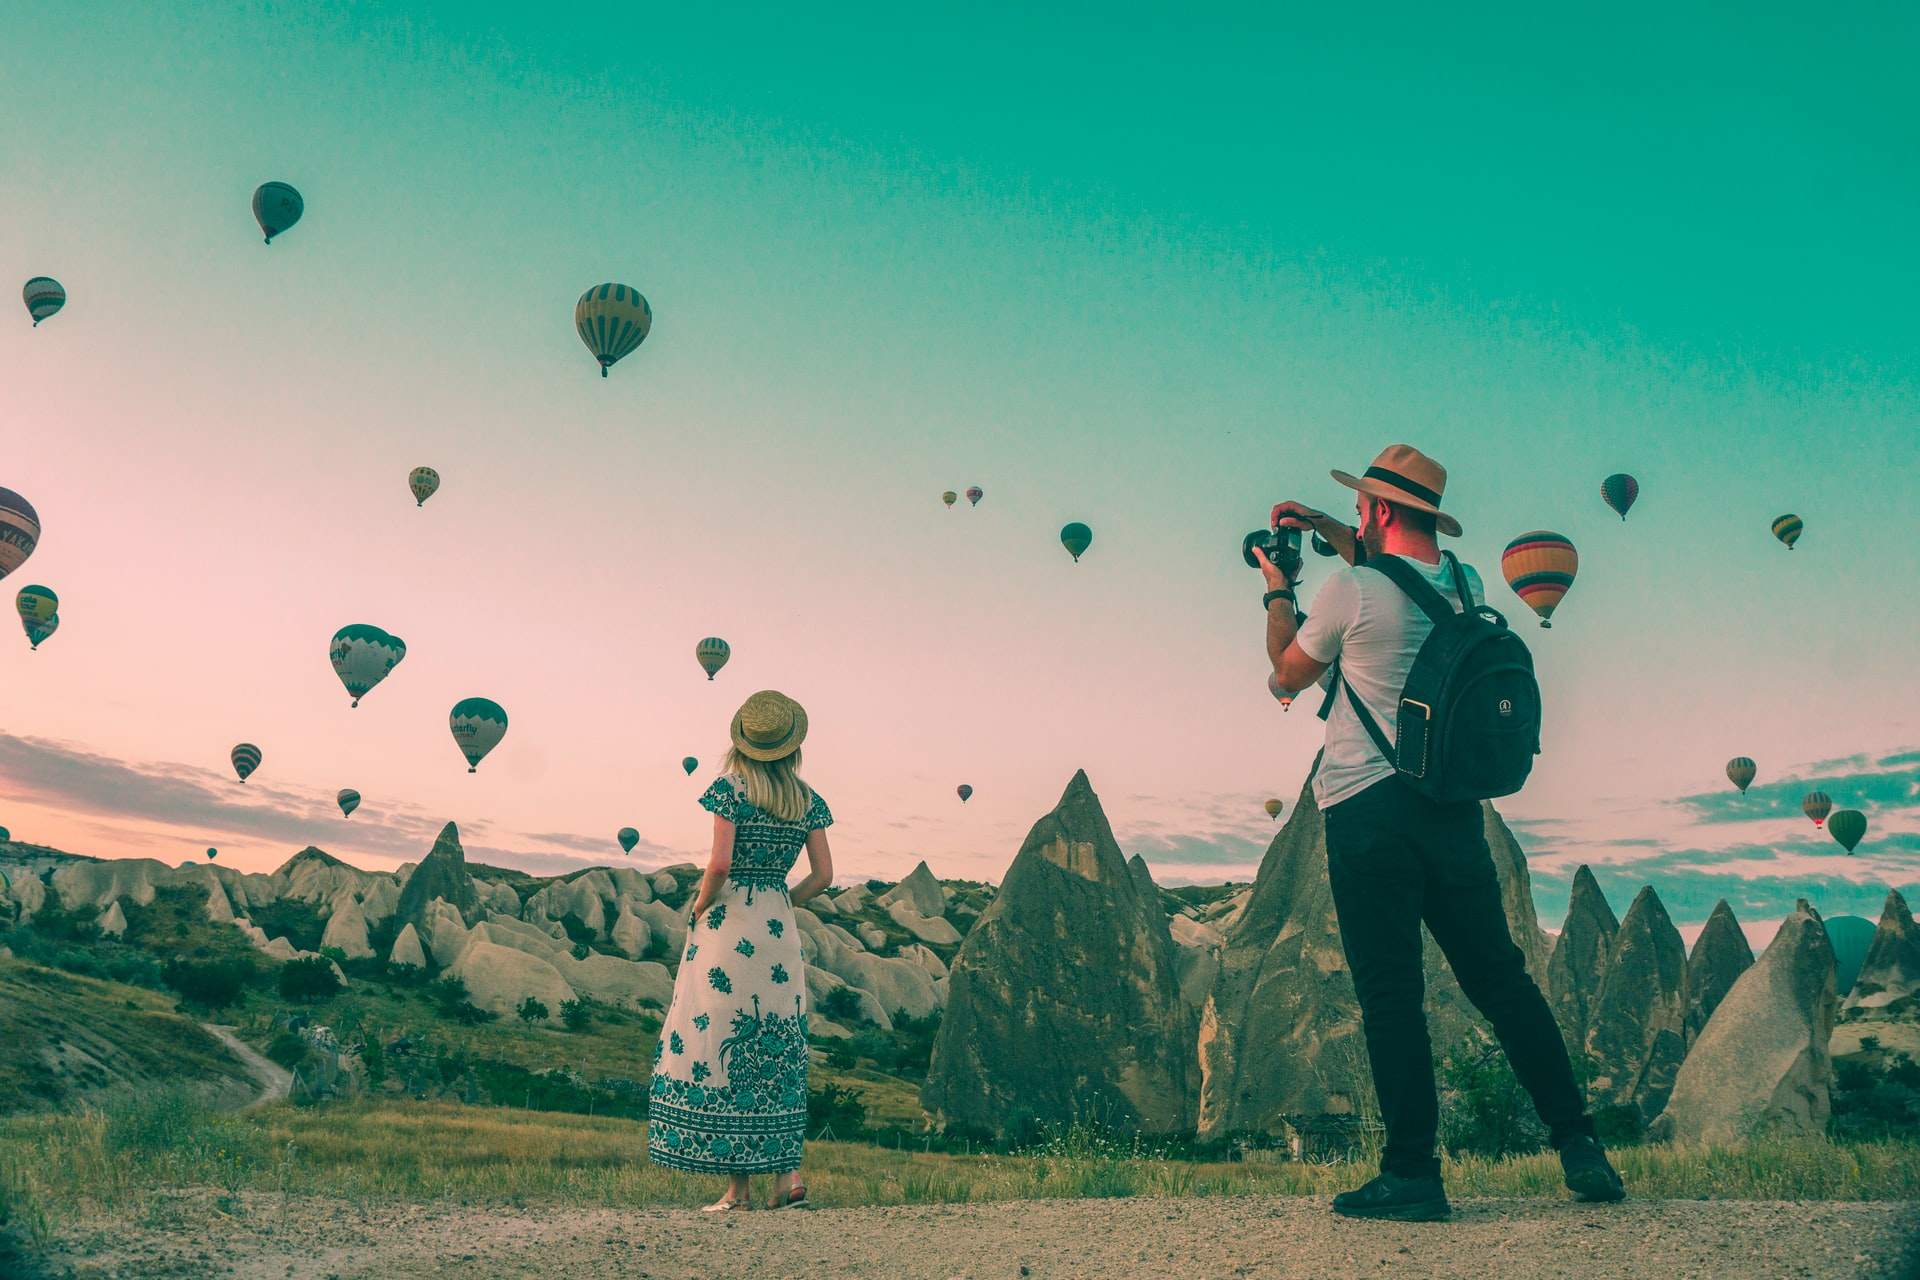 cappadocia-balloons-untravelled-paths